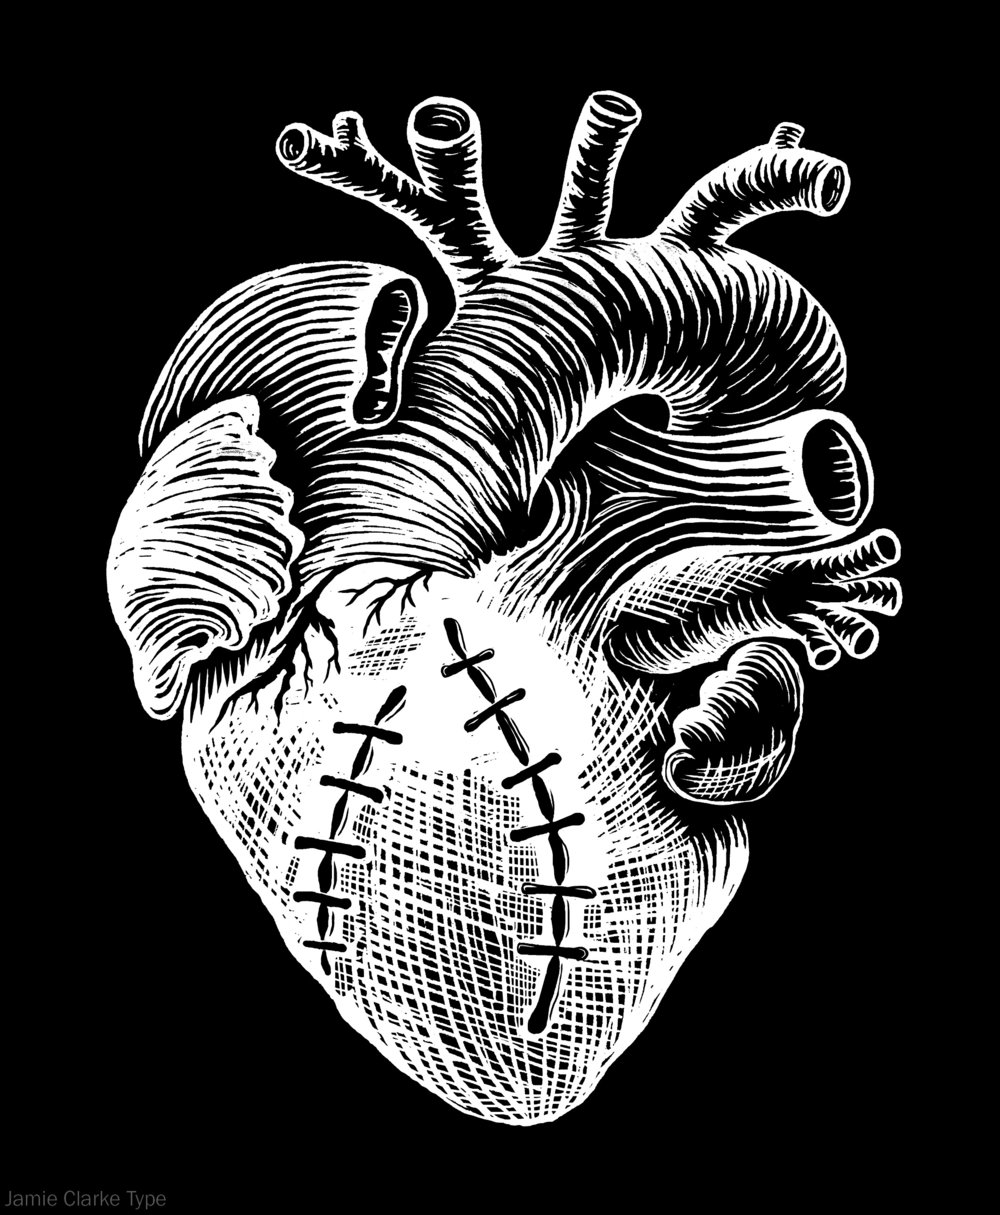 Stylised, black and white heart sketch with stitches.